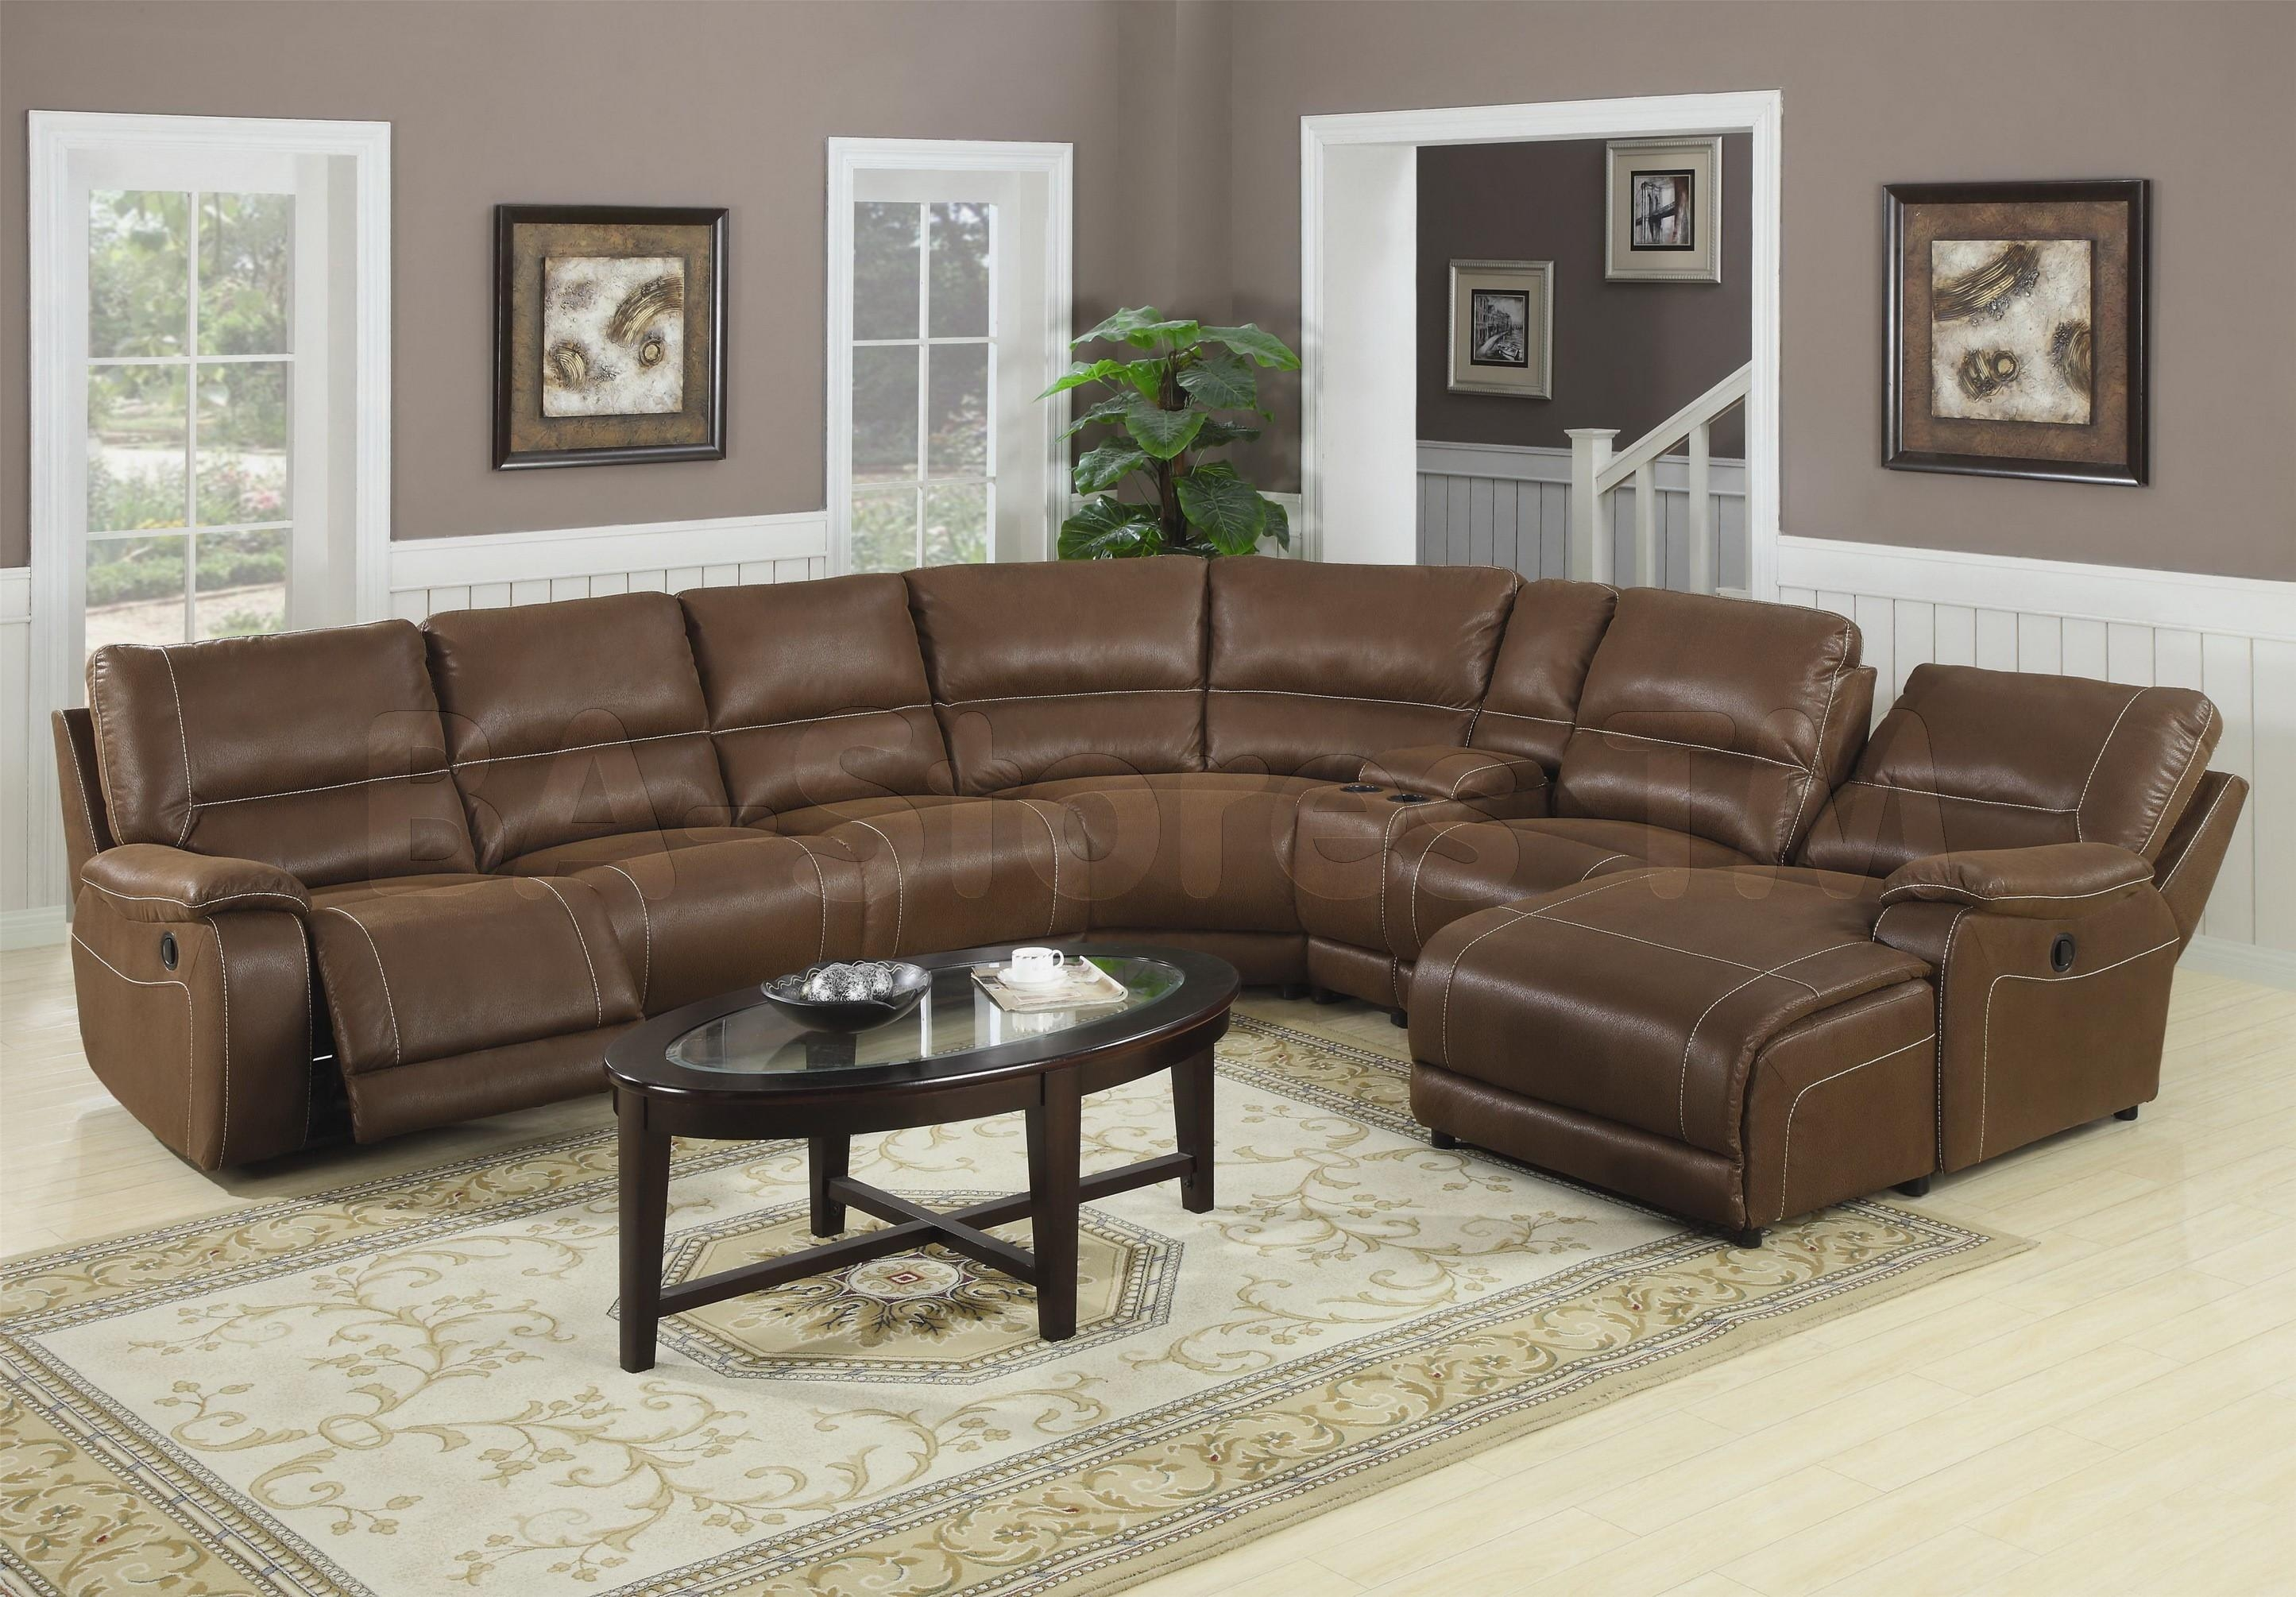 Sofas Center : Amazing Used Sectional Sofas Images Concept Off L With Used Sectionals (View 13 of 20)